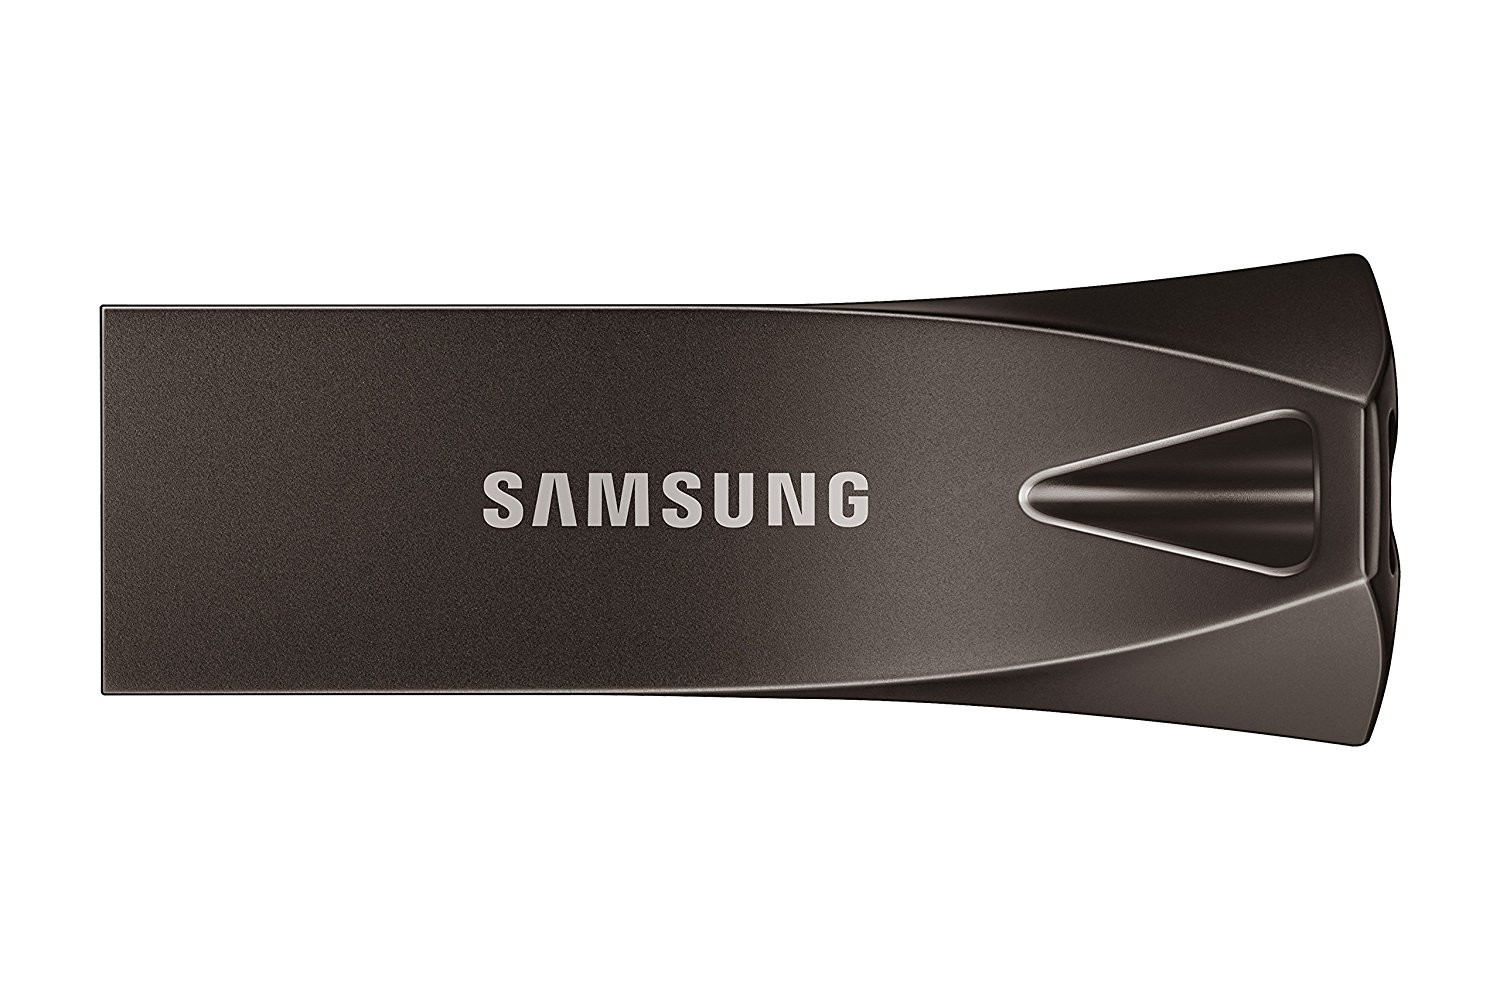 Samsung BAR Plus 64GB - 200MB/s USB 3.1 Flash Drive Titan Gray (MUF-64BE4/AM)